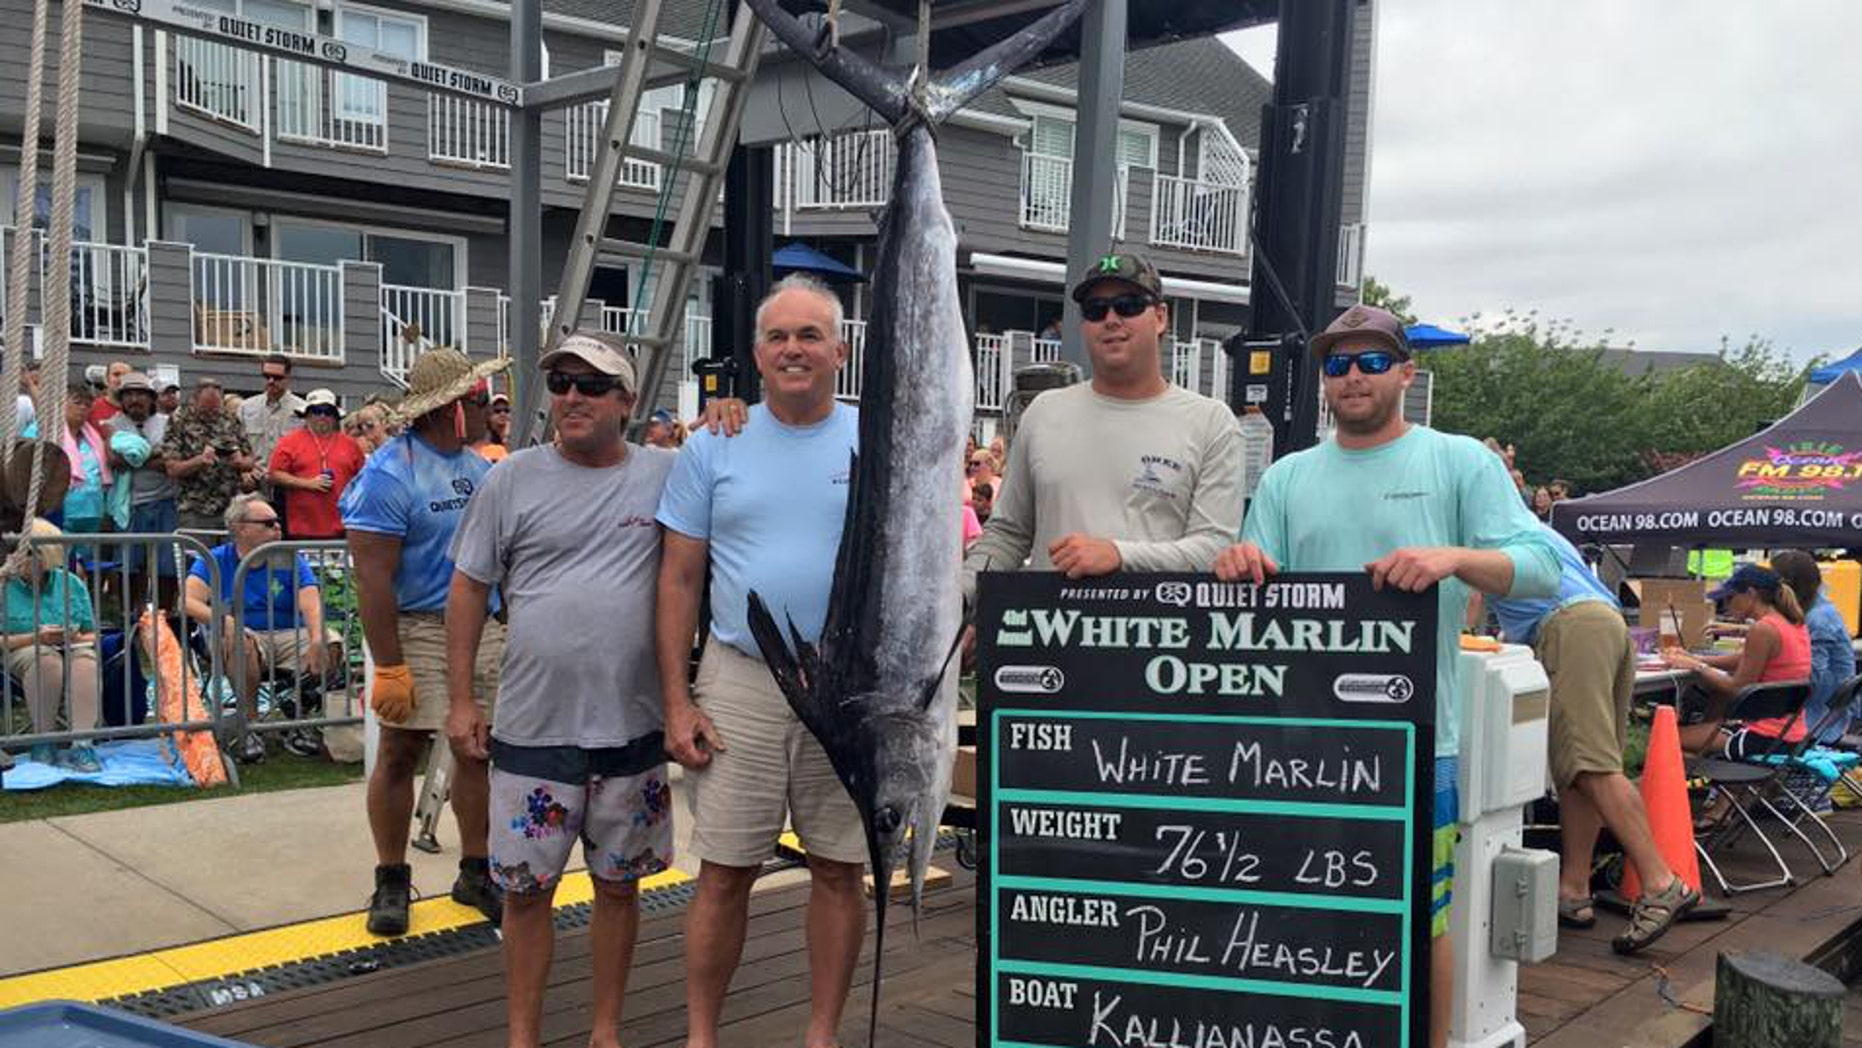 Angle Philip Heasley of Florida with winning 76.5-pound white marlin catch in the White Marlin Open. (White Marlin Open)